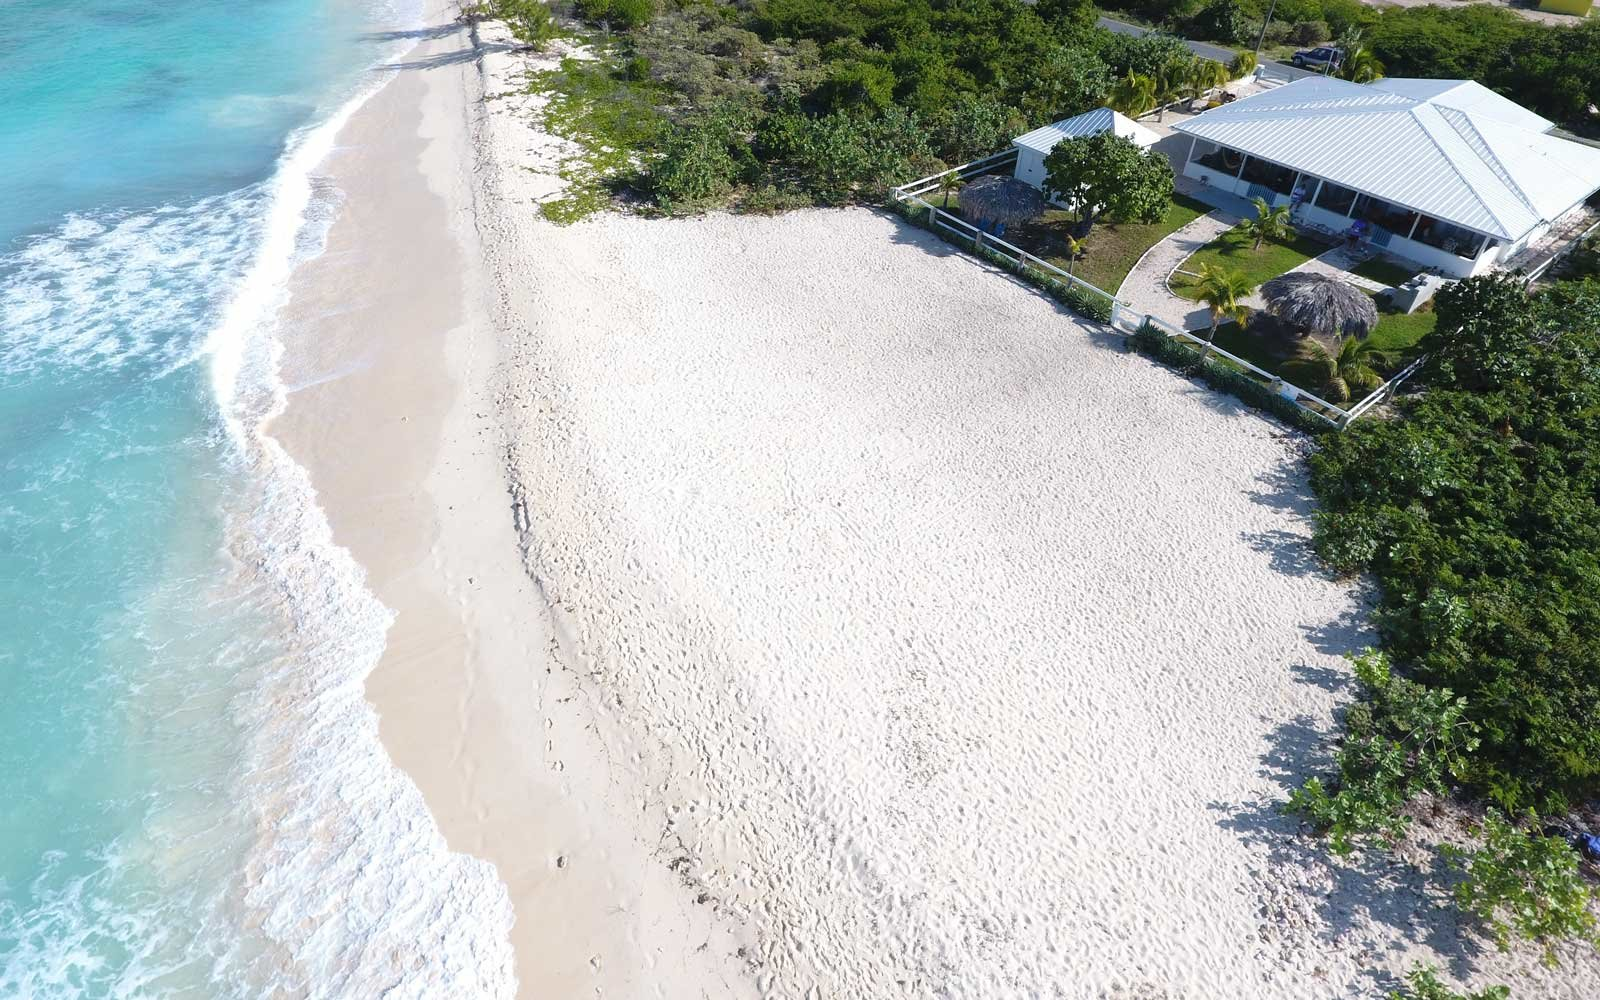 Turks and Caicos Airbnb